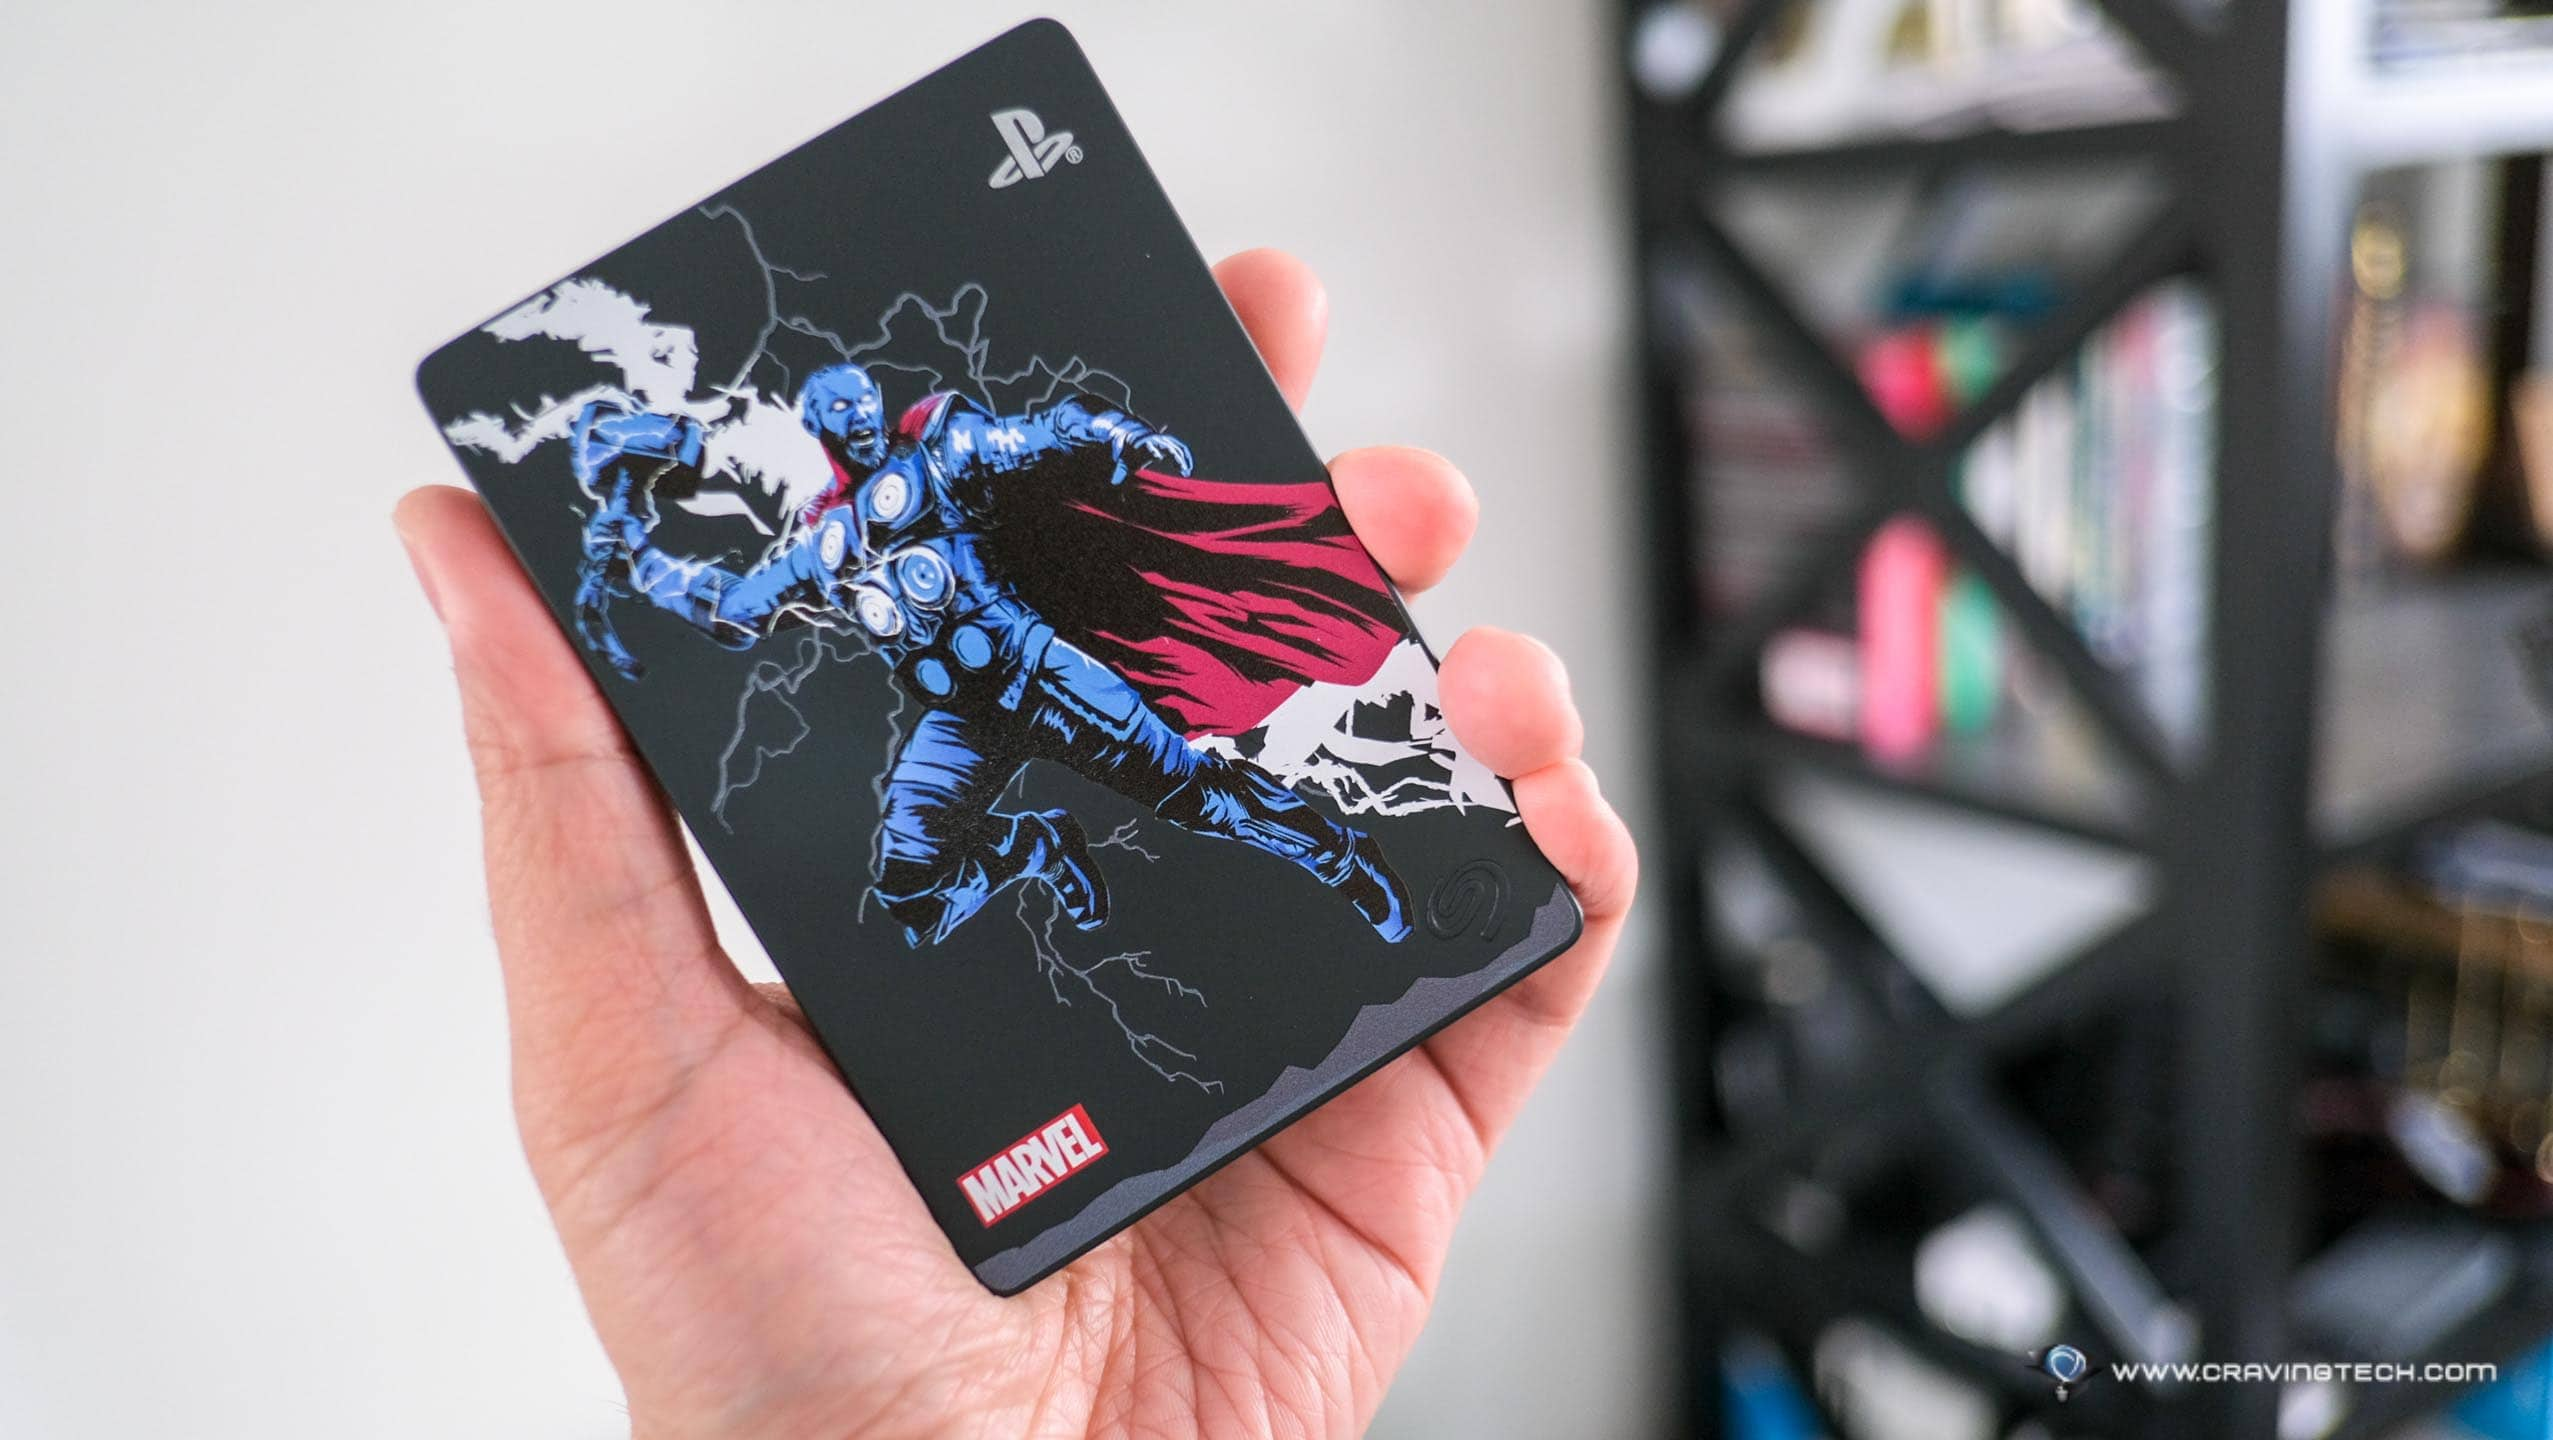 Expand your PS4 storage with this Seagate Game Drive for PS4 Marvel Avengers Limited Edition